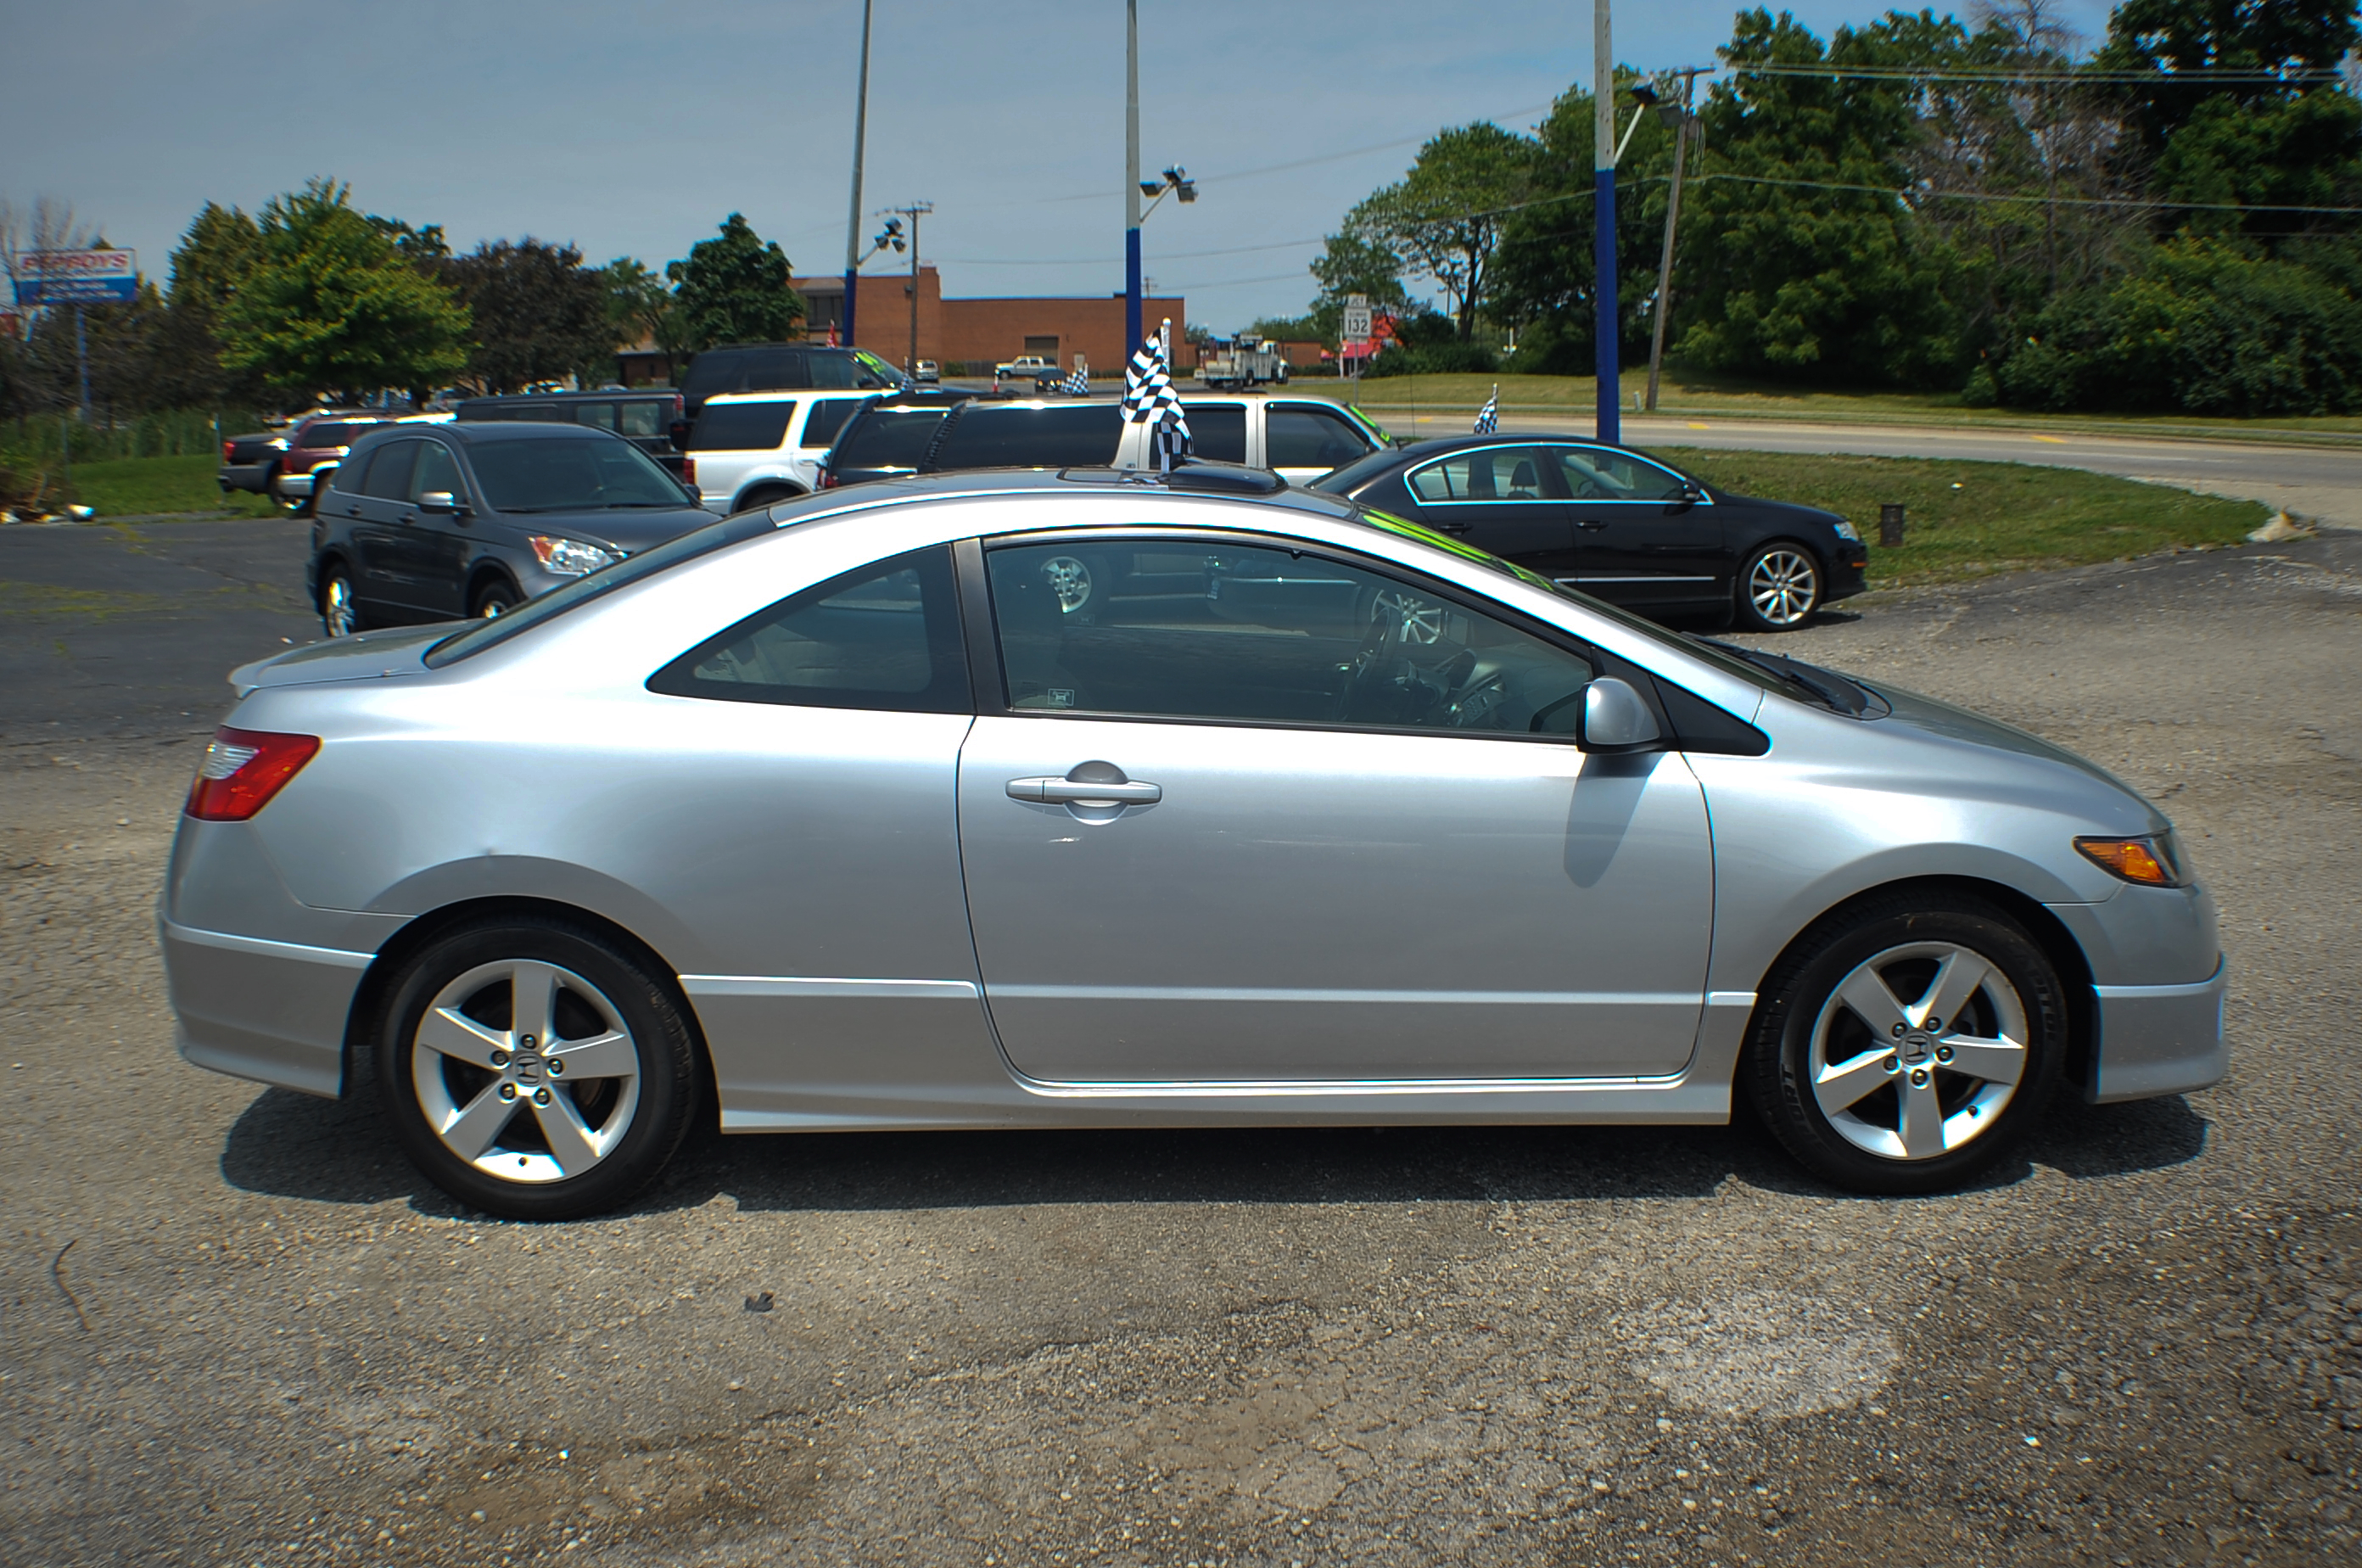 2008 honda civic silver sport coupe used car sale. Black Bedroom Furniture Sets. Home Design Ideas